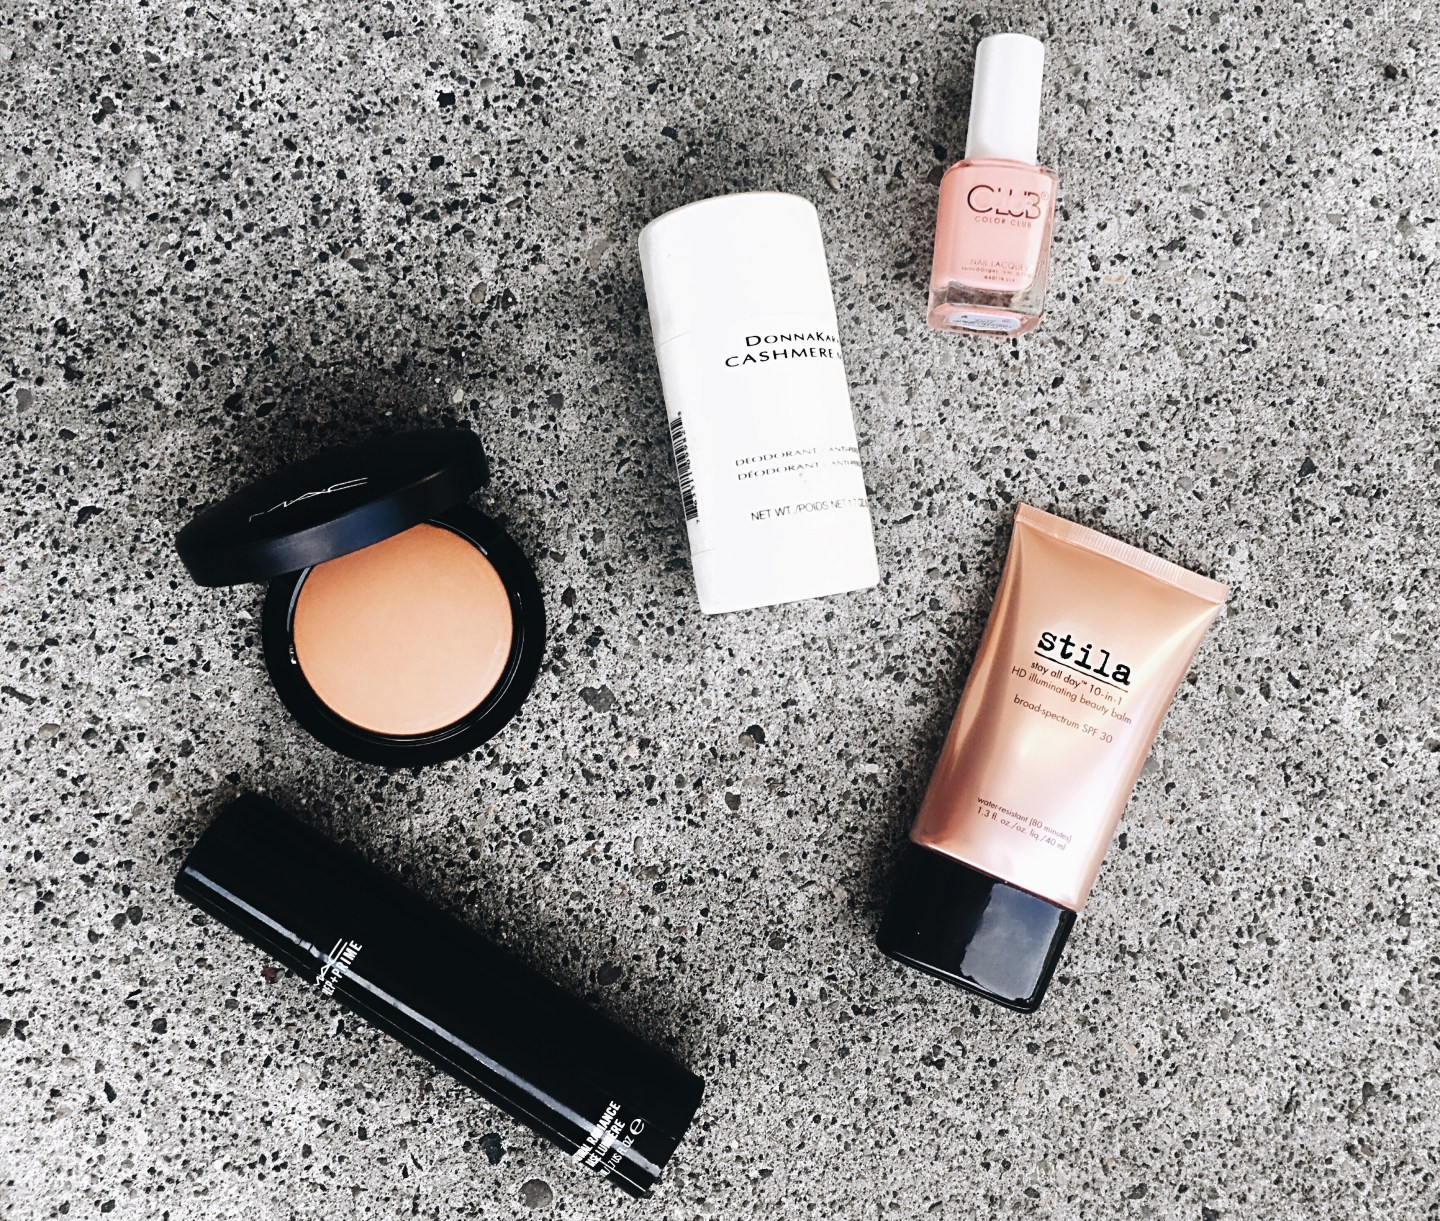 Nordstrom Beauty Staples Haul